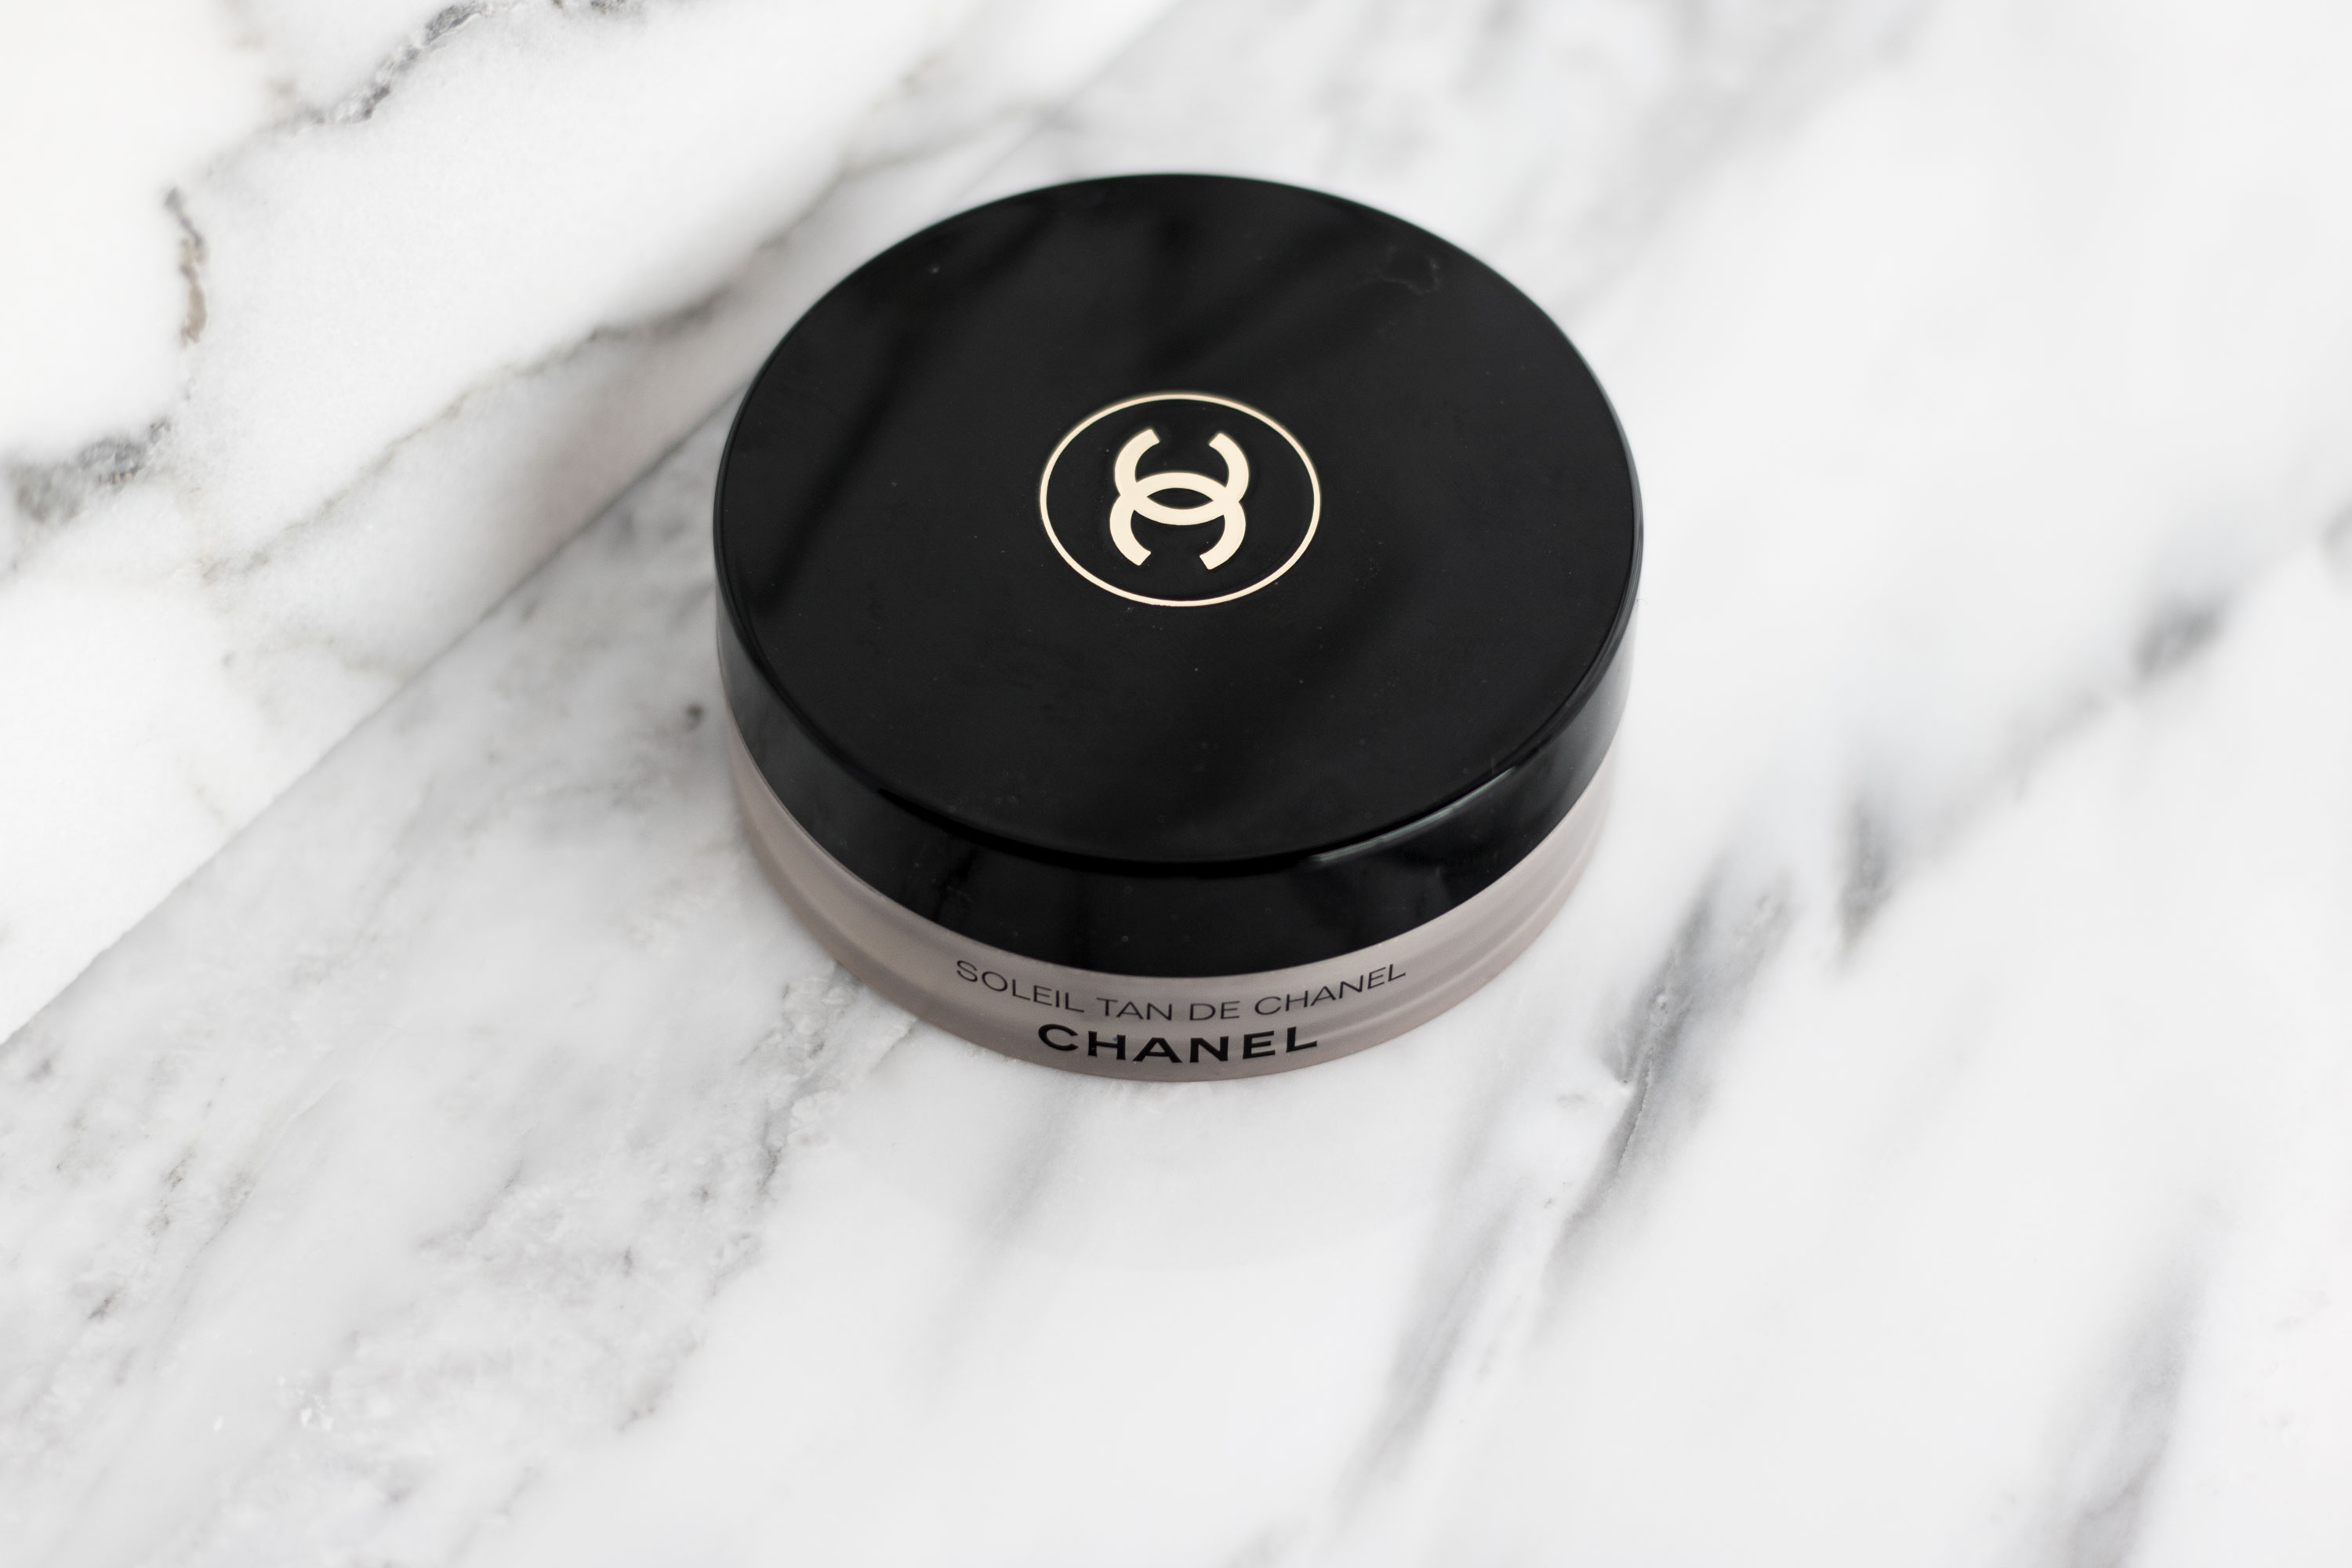 cult beauty products worth the cult status - Chanel Soleil tan de Chanel bronzer